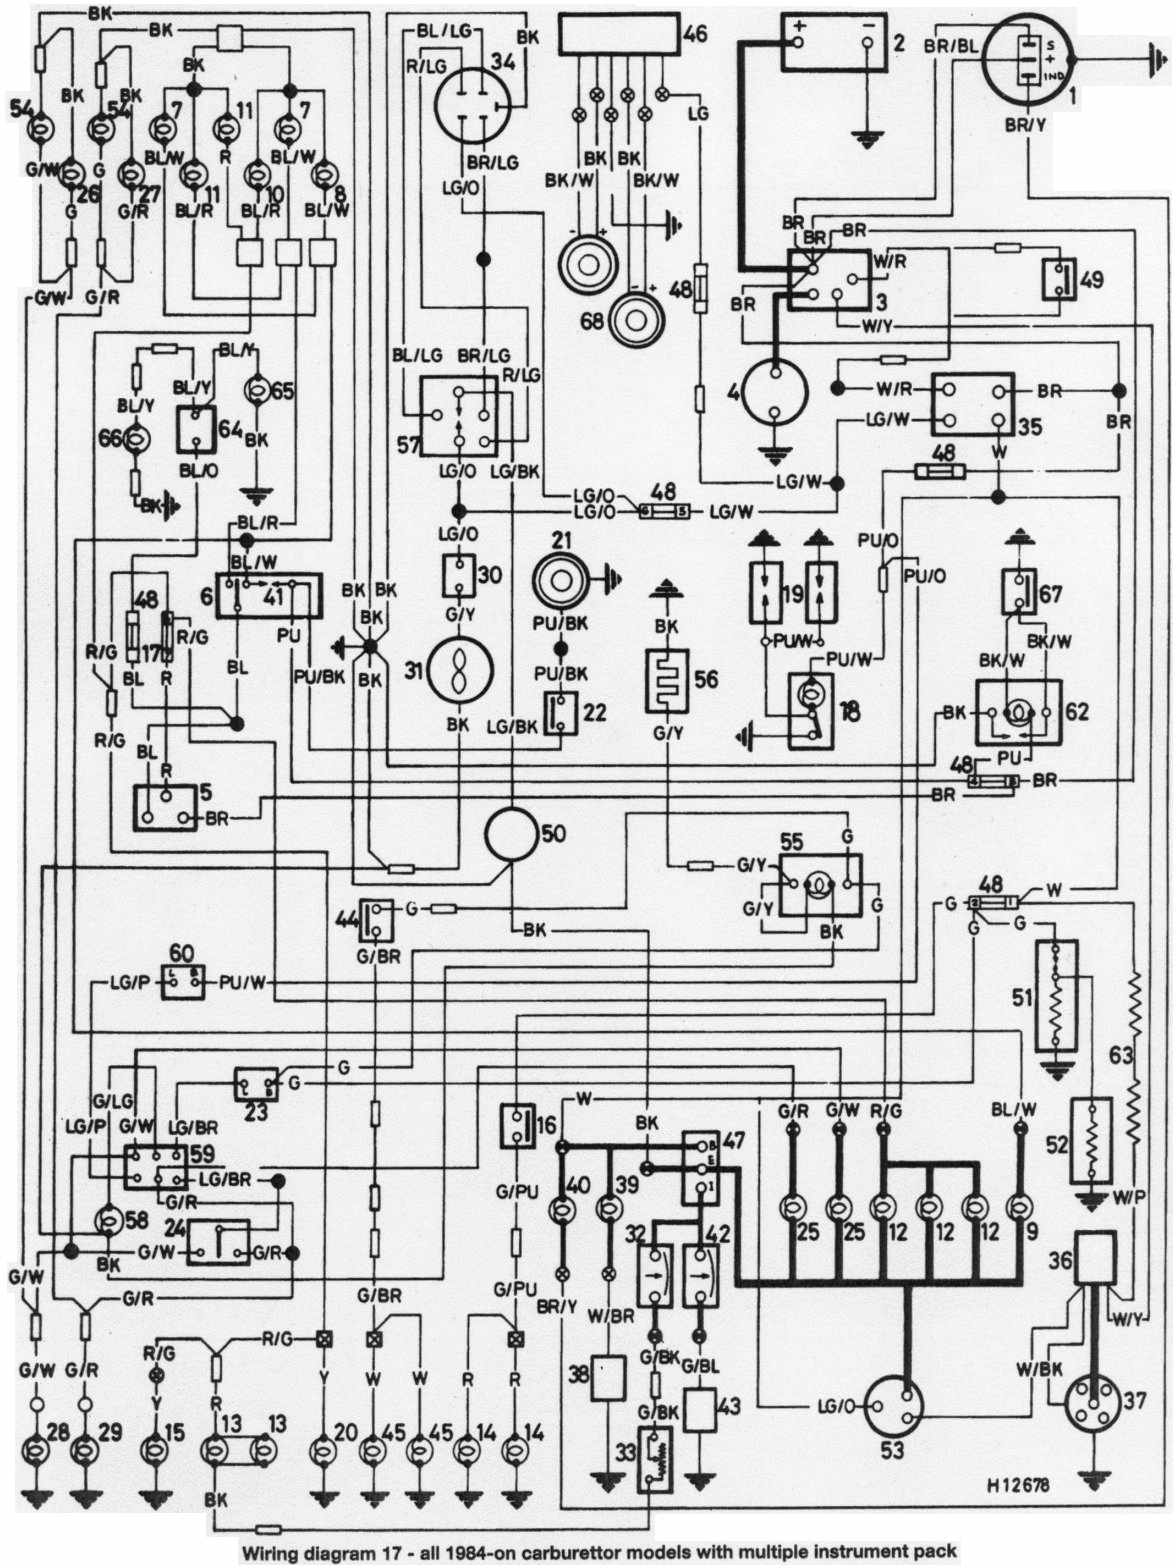 wiring diagram of 1984 onwards all mini series with multiple instrument pack?t\=1508499130 bmw mini wiring diagram gem e2 wiring diagrams \u2022 wiring diagrams 2007 mini cooper wiring diagrams at reclaimingppi.co